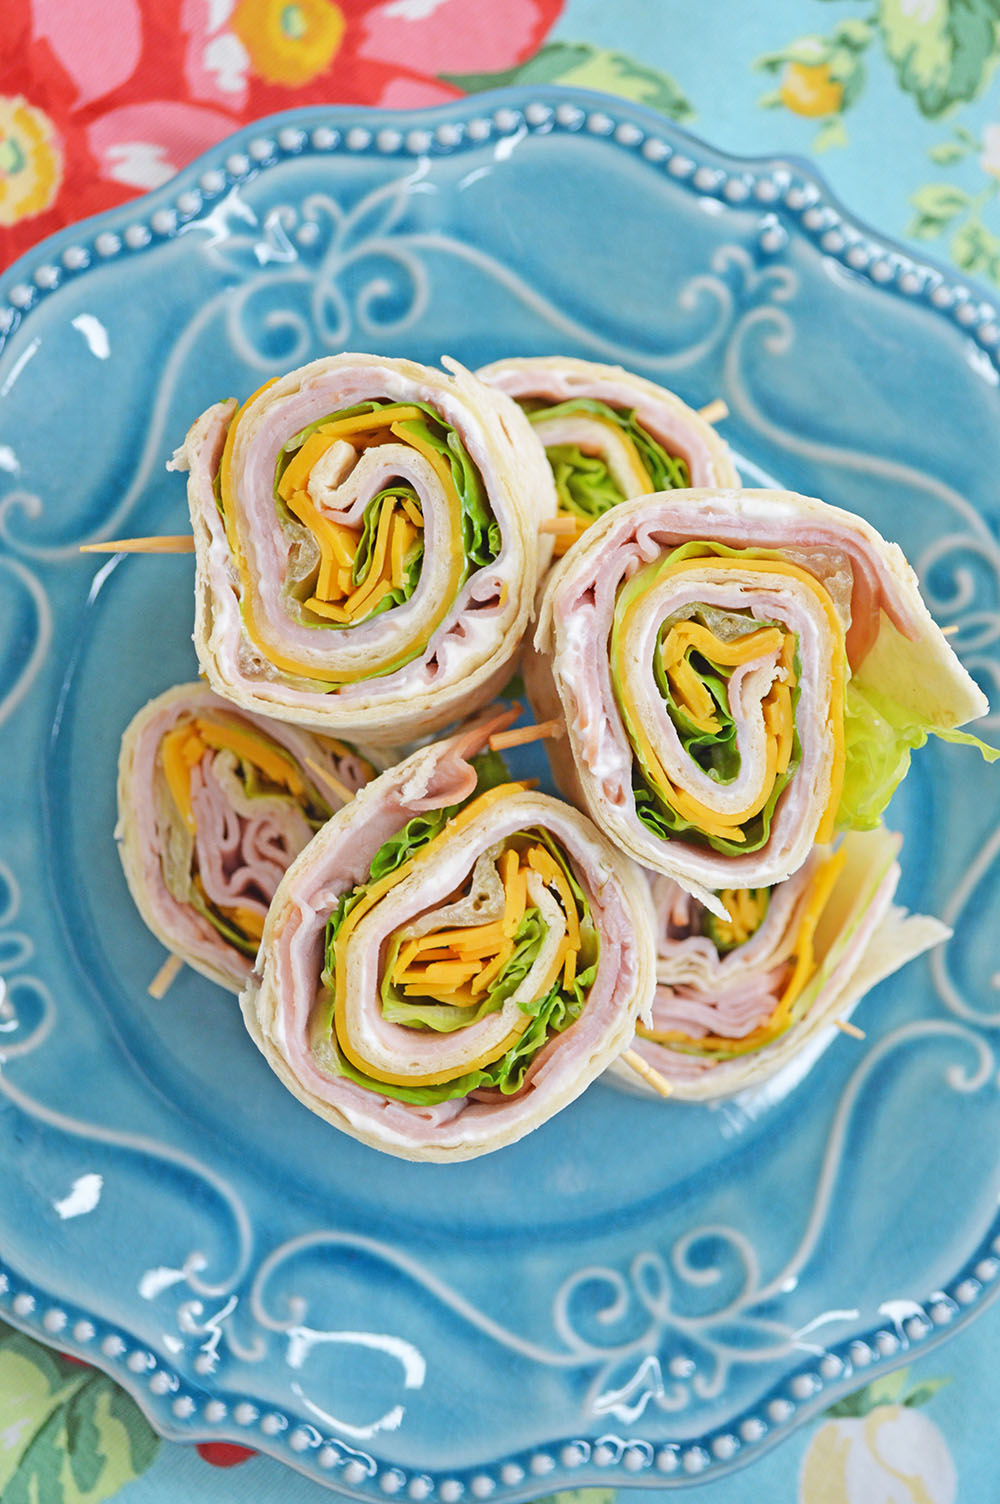 Sophisticated Pizza Dough Ham Cheese Pinwheels Youtube Ham Cheese Pinwheels Cheese Pinwheels Made Back To School Lunches Ham School Make Ham Cheese Pinwheels nice food Ham And Cheese Pinwheels